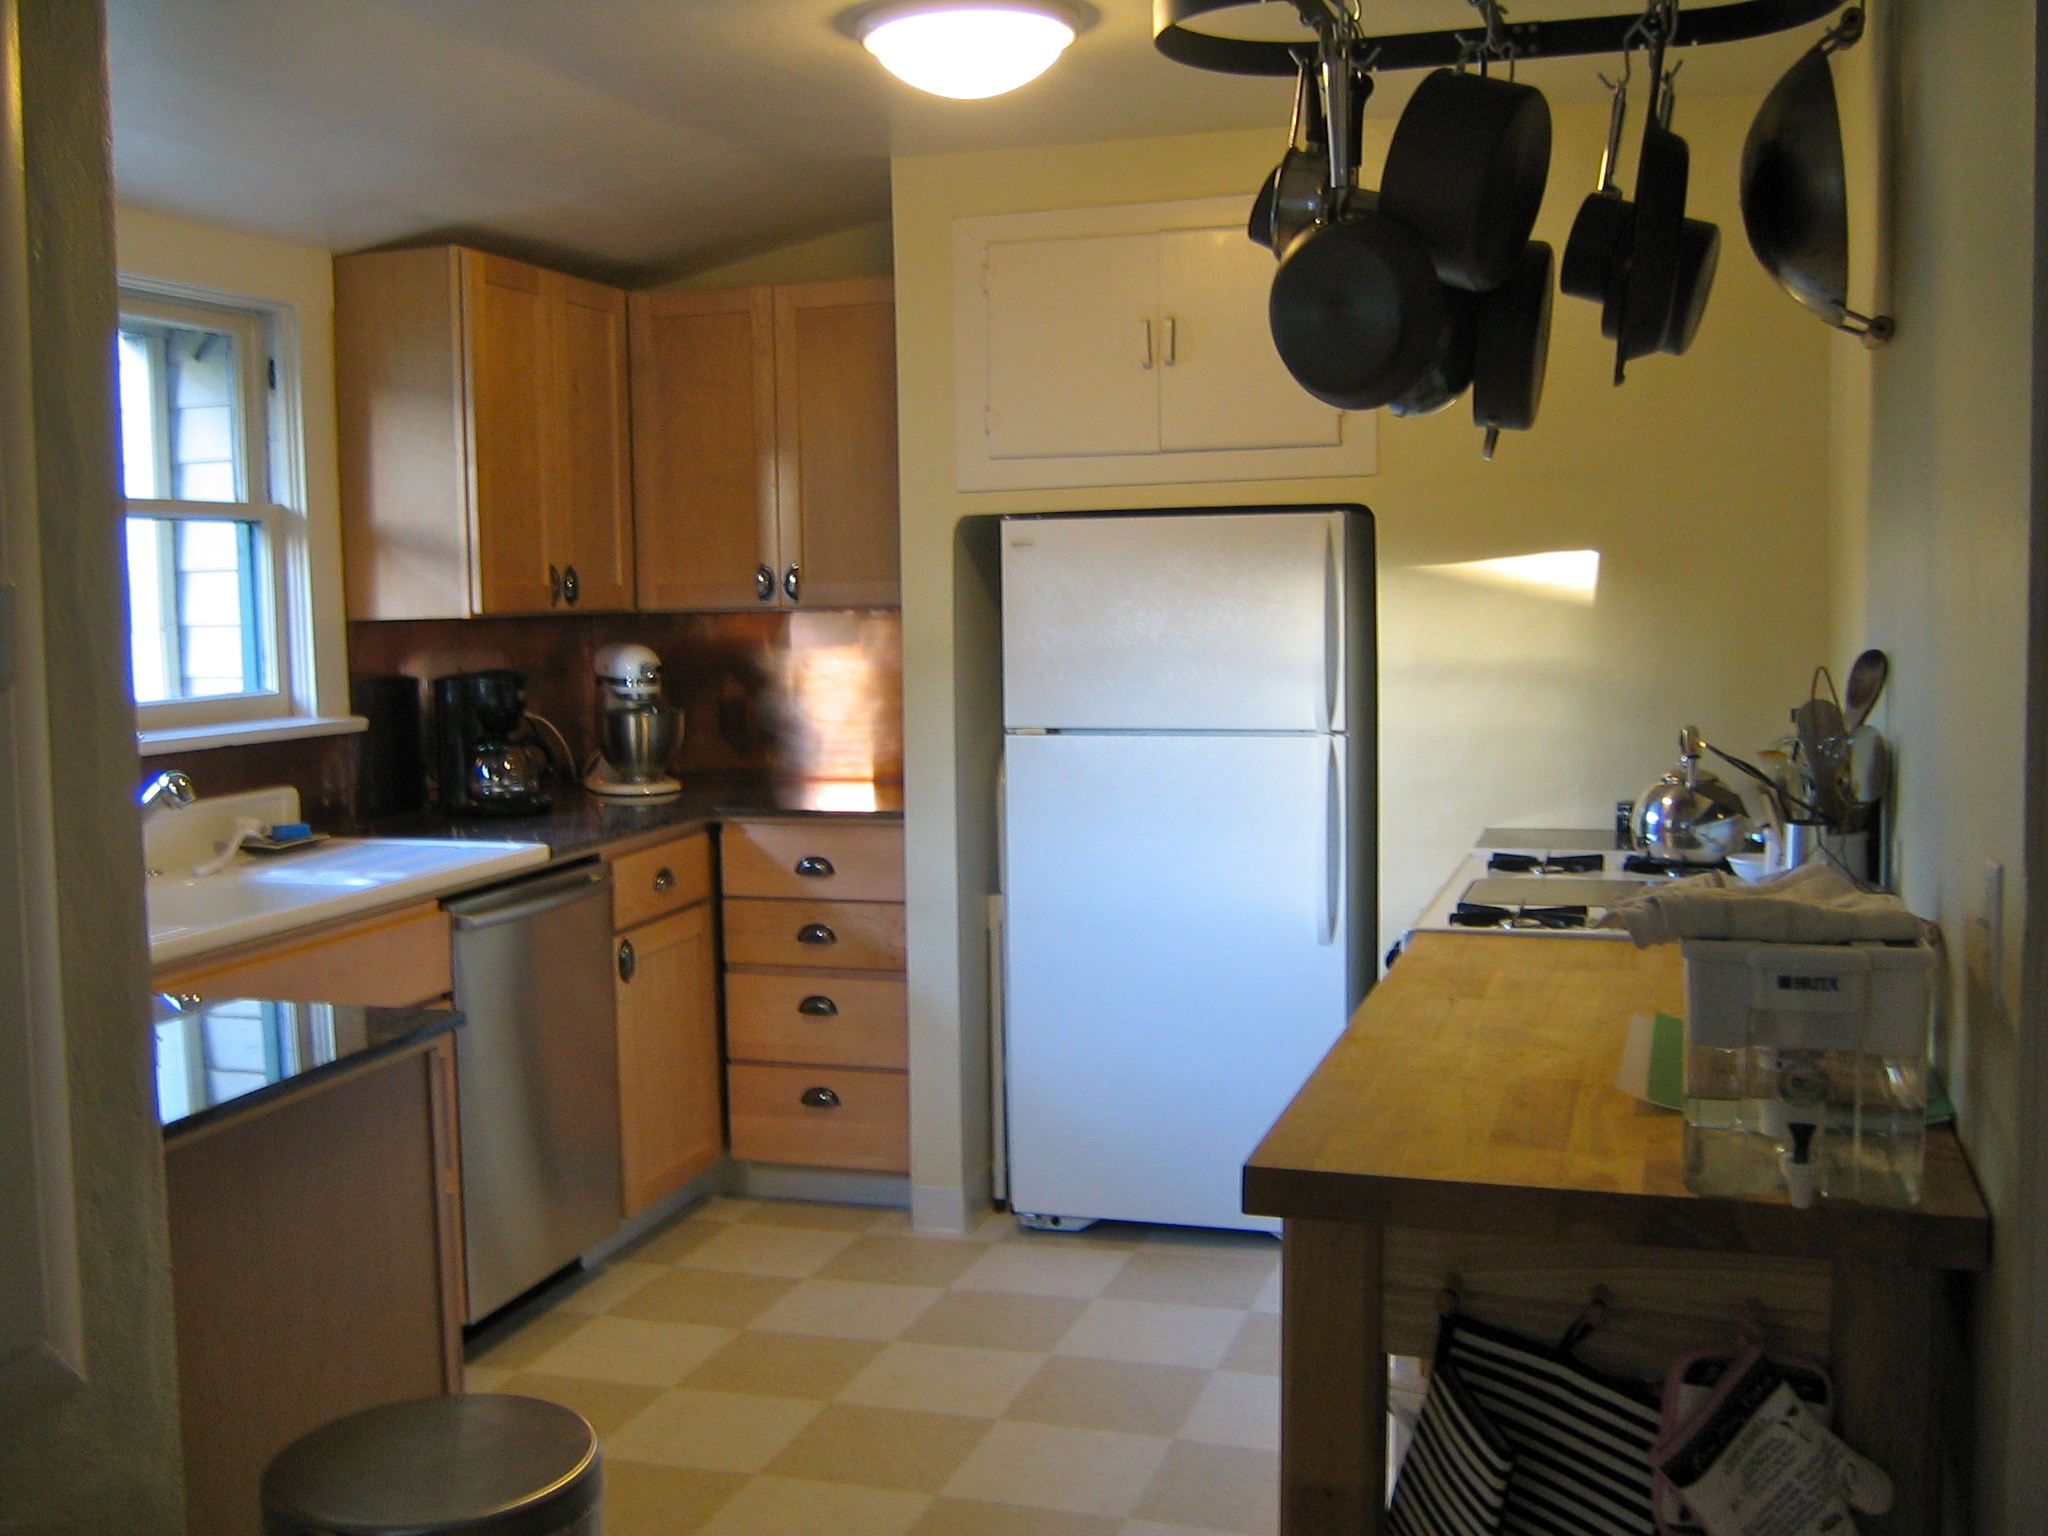 Kitchen Remodel Under 5000   How To Remodel Your Entire Kitchen For Under  $5000